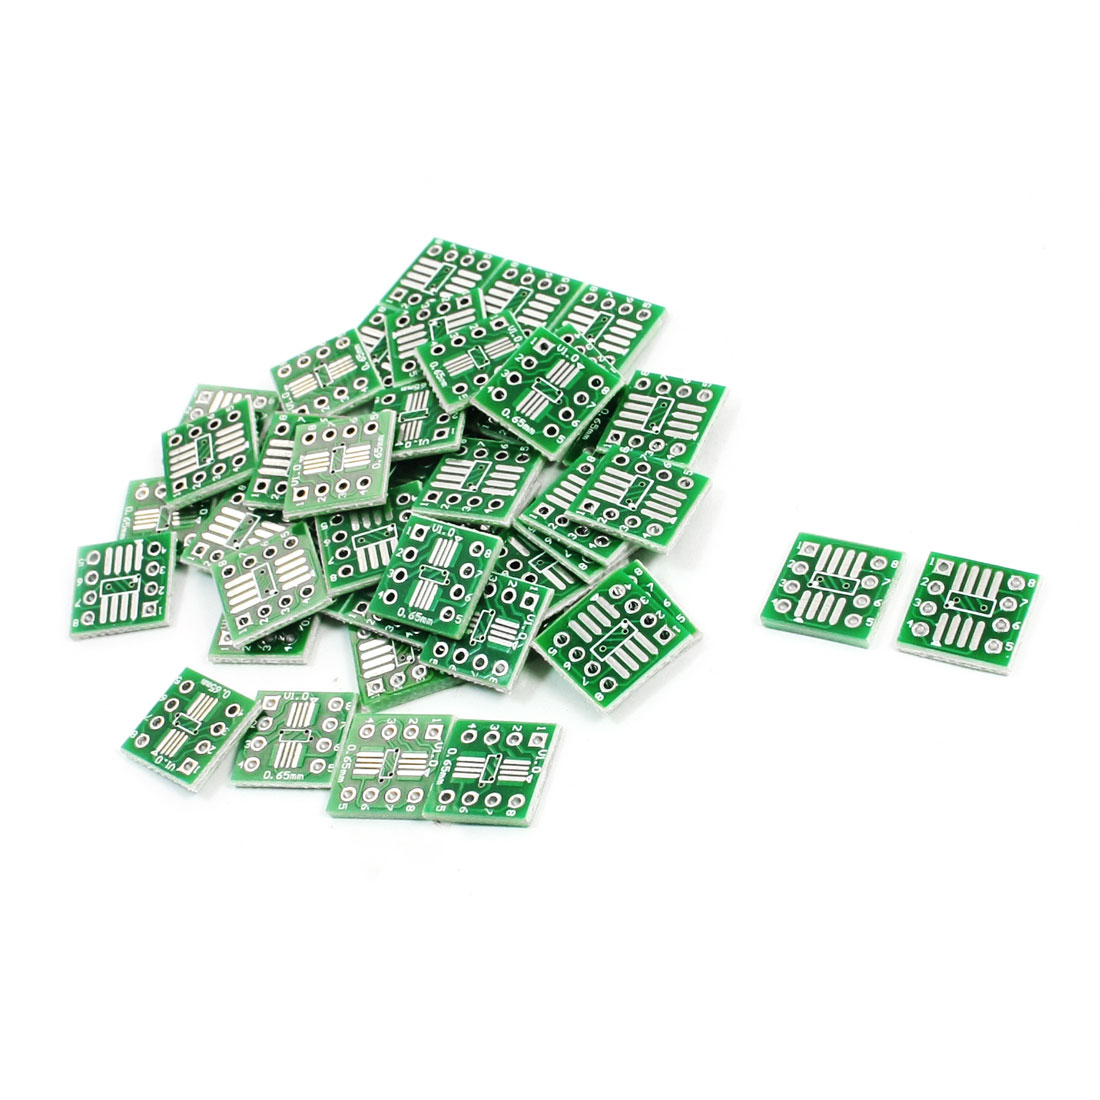 Universal Singlesided 254mm Pitch Smd Pcb Printed Circuit Board